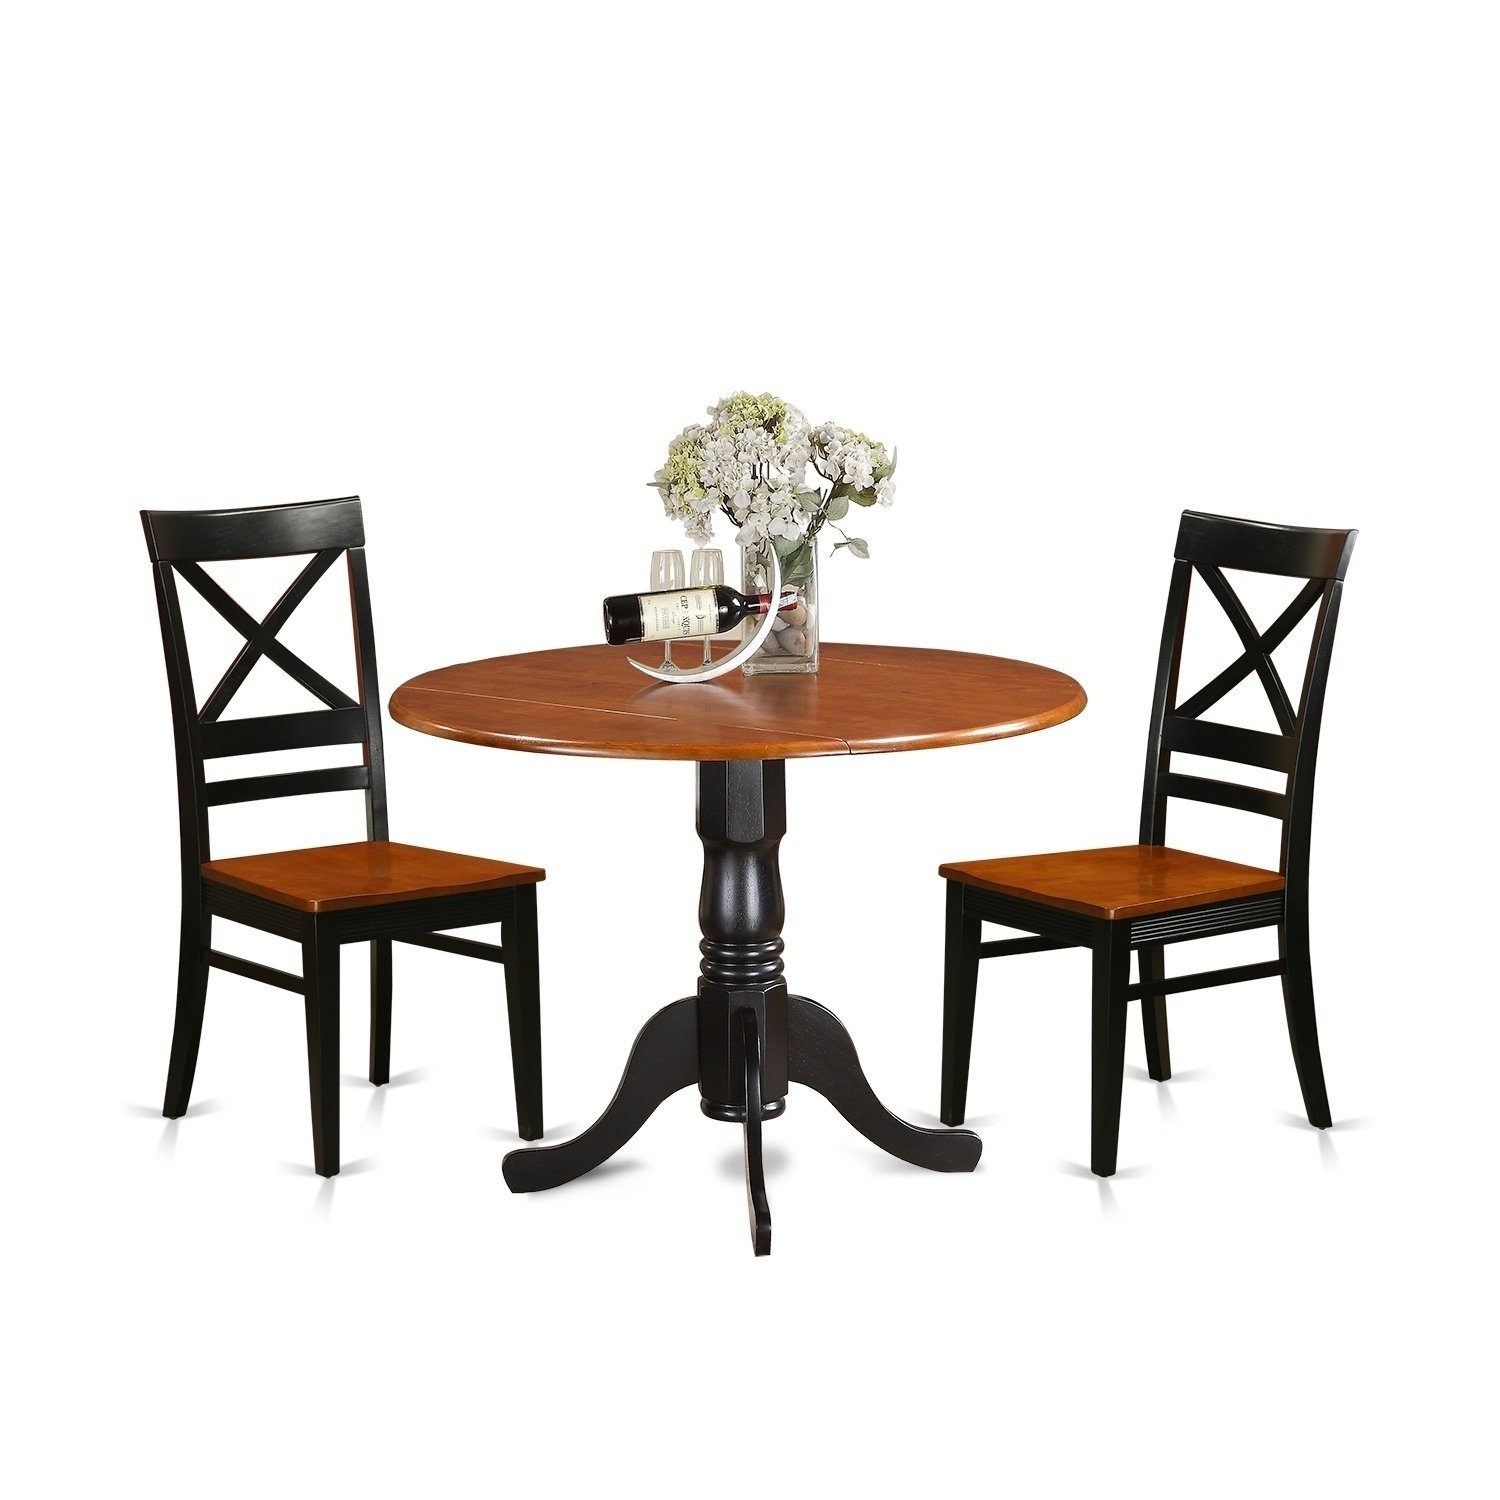 Dlqu3 W 3 Pc Kitchen Table Set Dining Table And 2 Kitchen Chairs With Regard To Recent Caden 6 Piece Rectangle Dining Sets (Image 8 of 20)